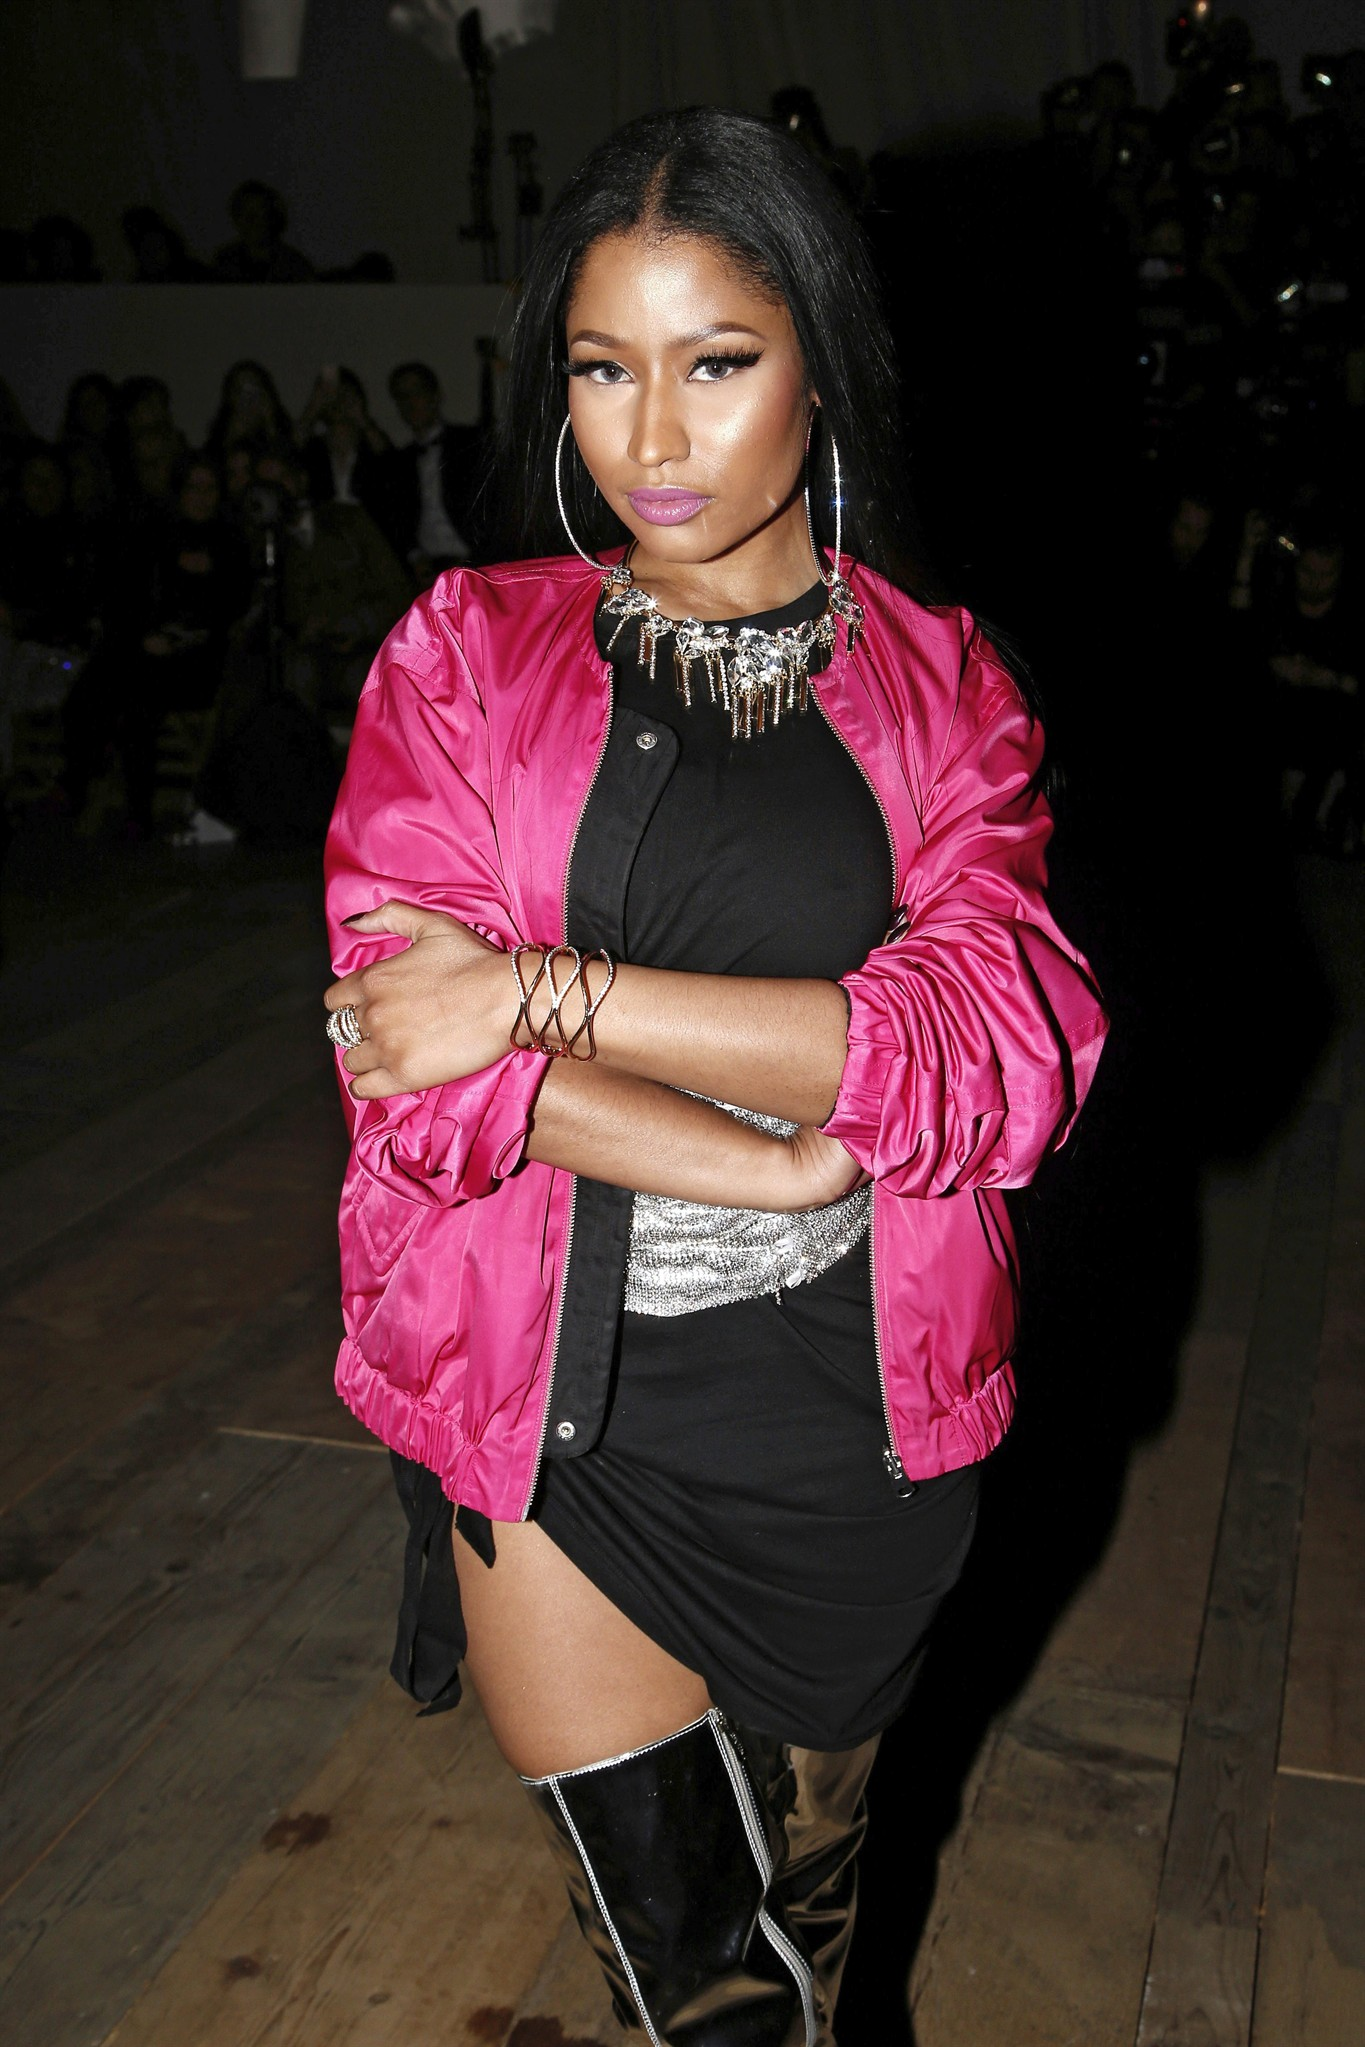 Nicki minaj addresses remy ma drama in new song no frauds 680 news file in this wednesday march 1 2017 file photo singer nicki minaj arrives to attend the hm fall winter 2017 2018 ready to wear fashion collection voltagebd Images